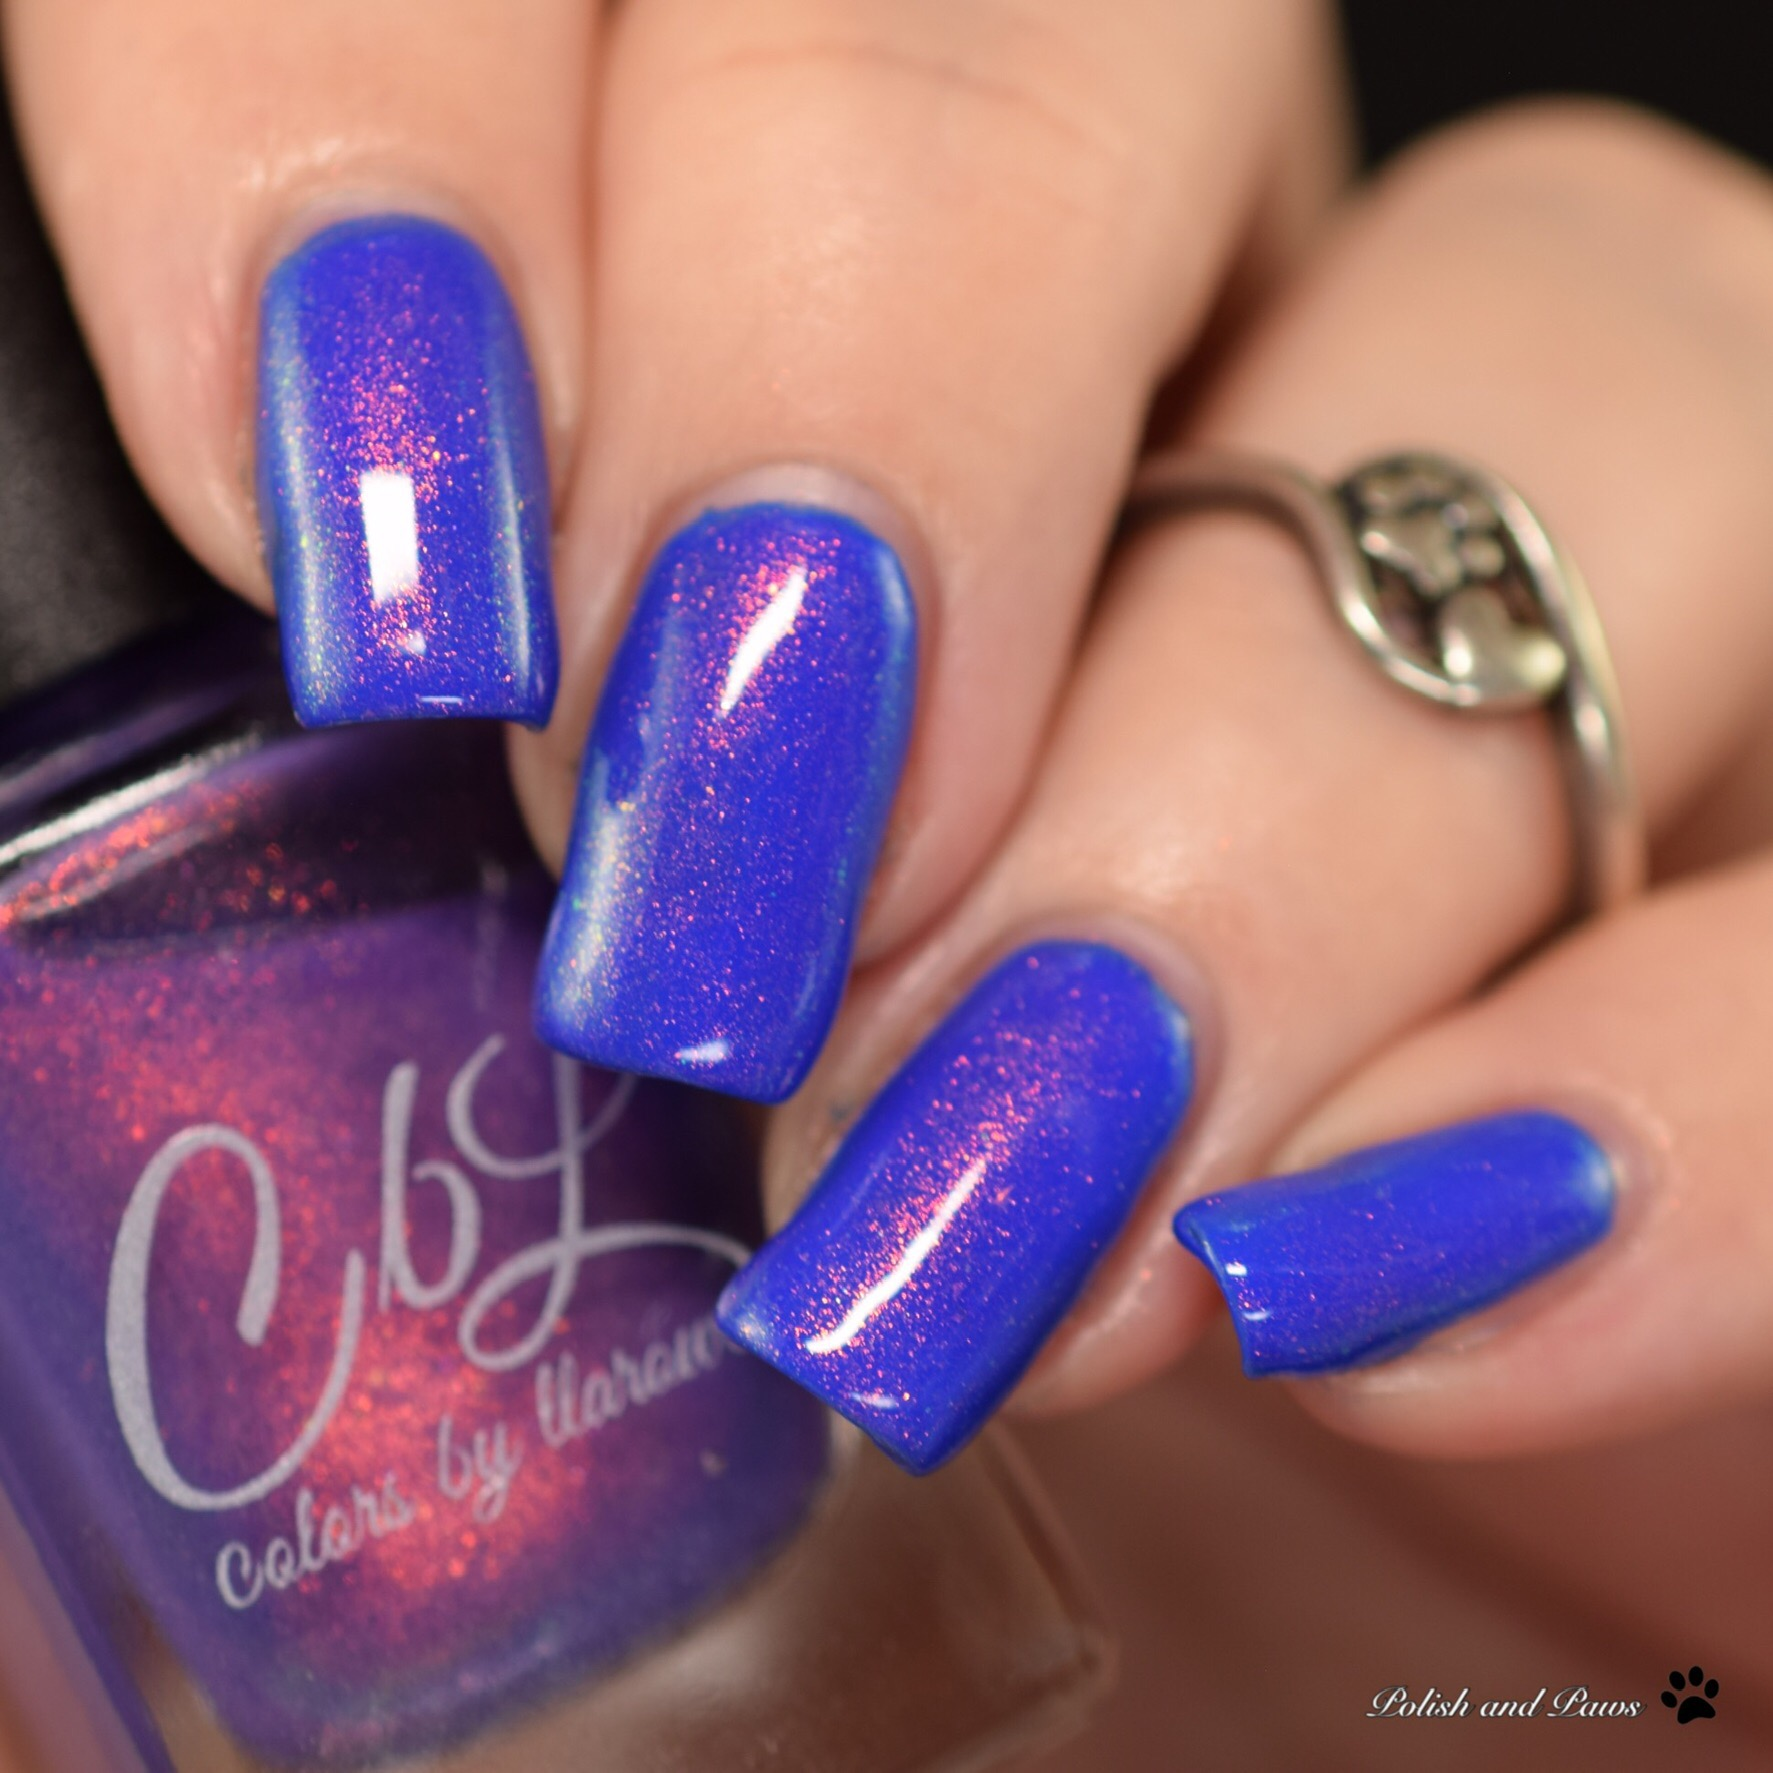 CbL Bohemian Rhapsody over Royal Blue